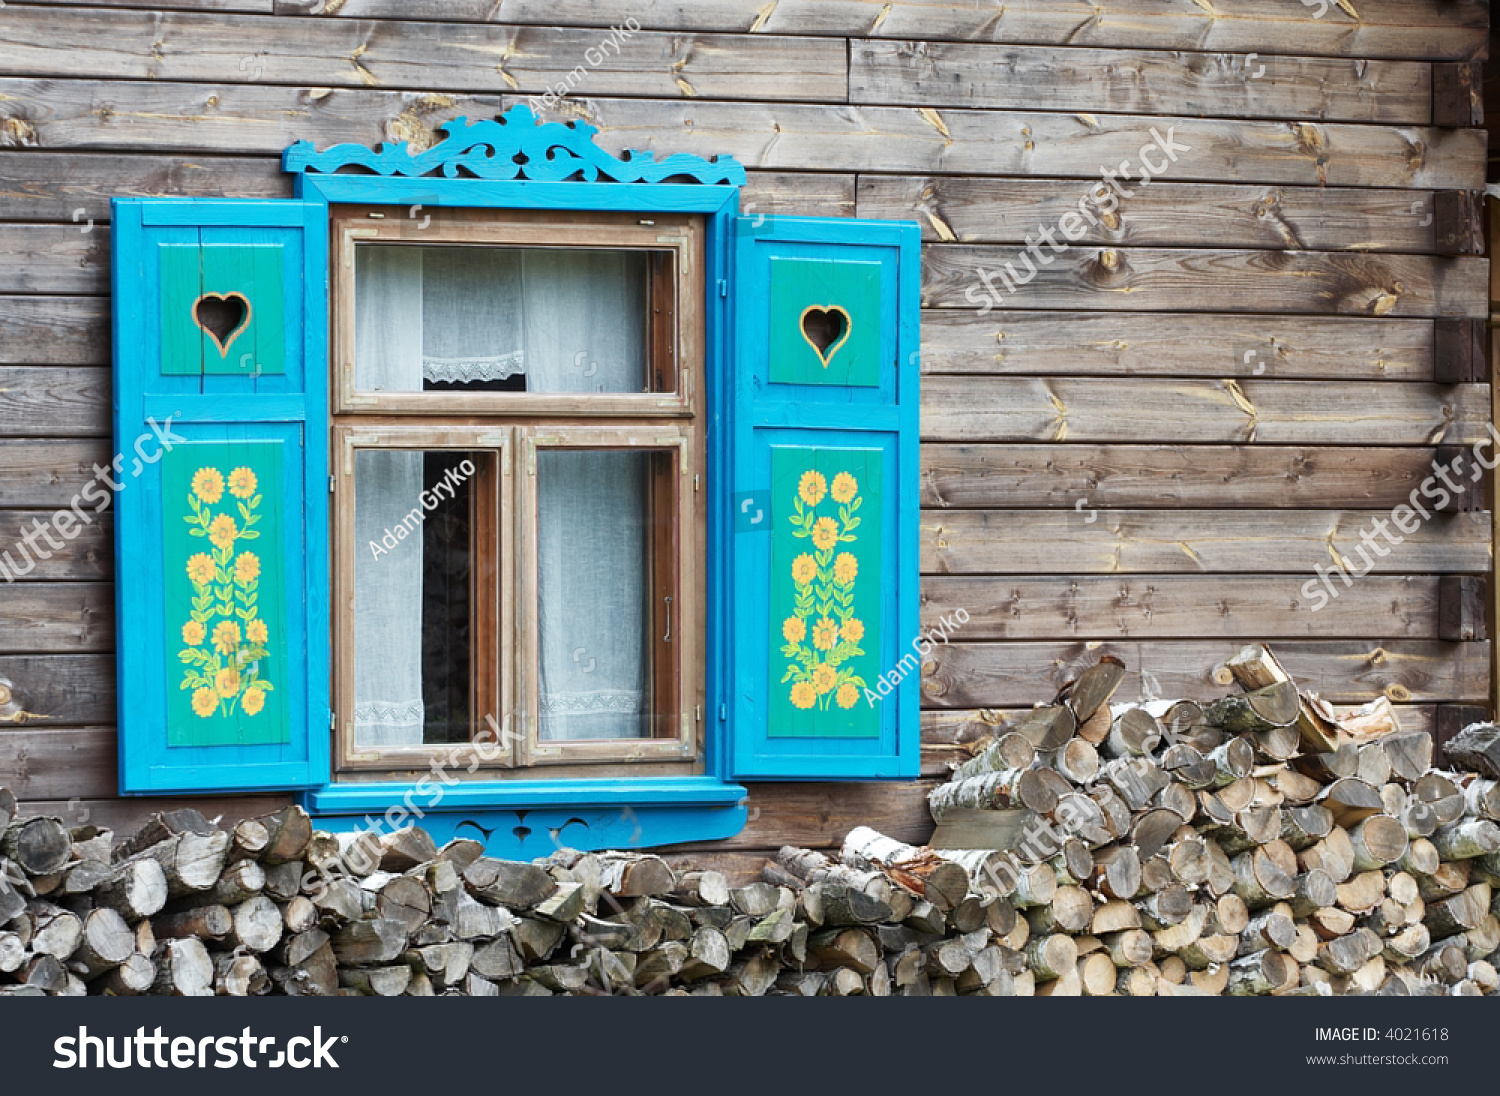 opened window with decorative colorful shutters and logs below - Decorative Shutters